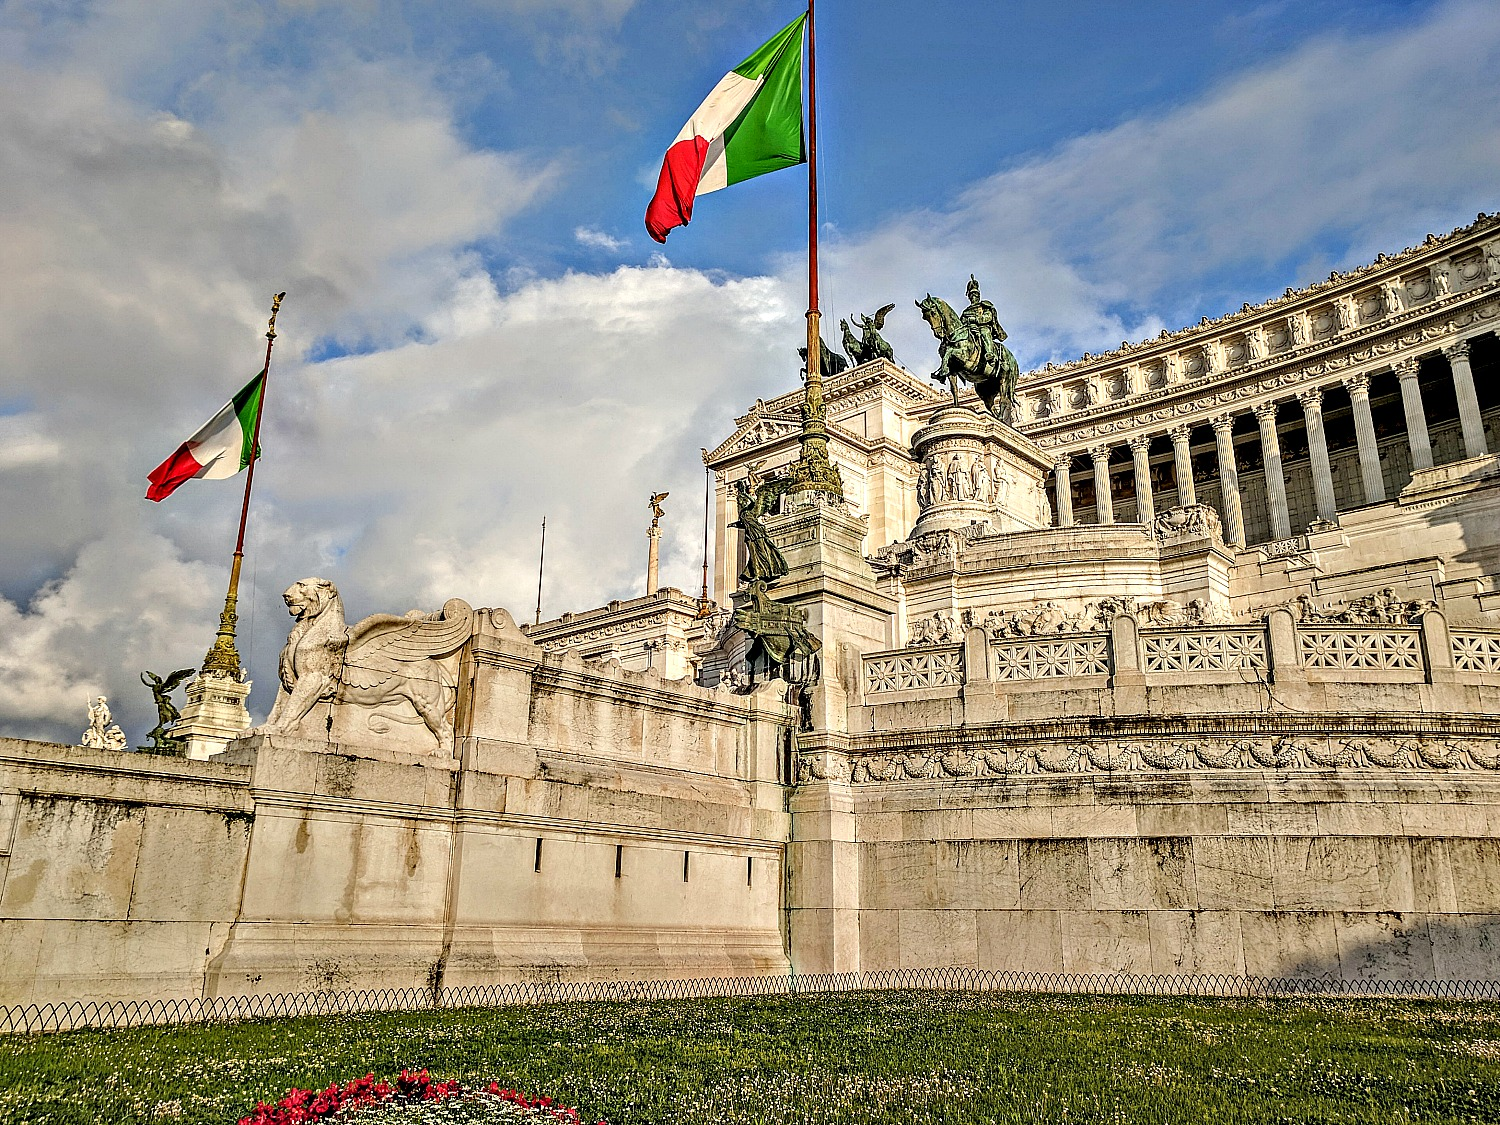 Mounment of Victor Emmanuel in Rome.